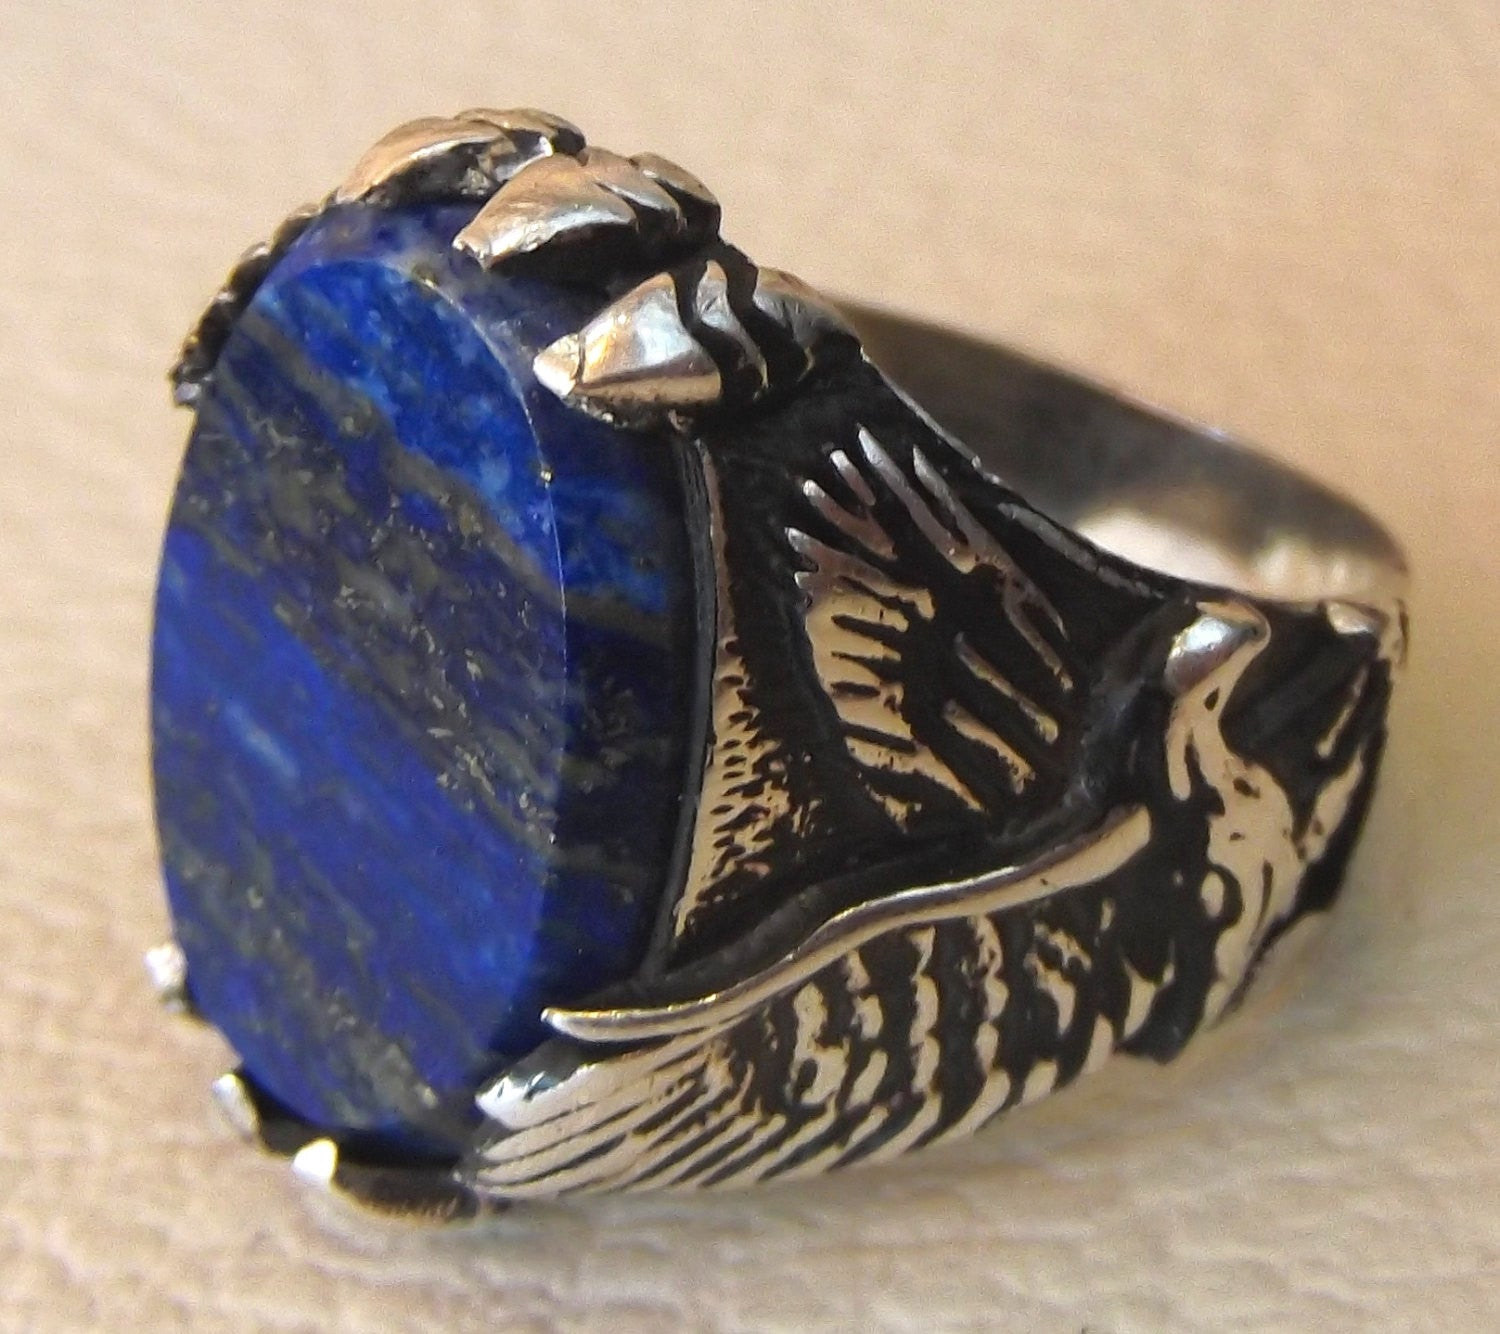 blue natural semi precious stone lapis lazuli gemstone sterling silver 925 men ring eagle all sizes flat oval gem antique style jewelry